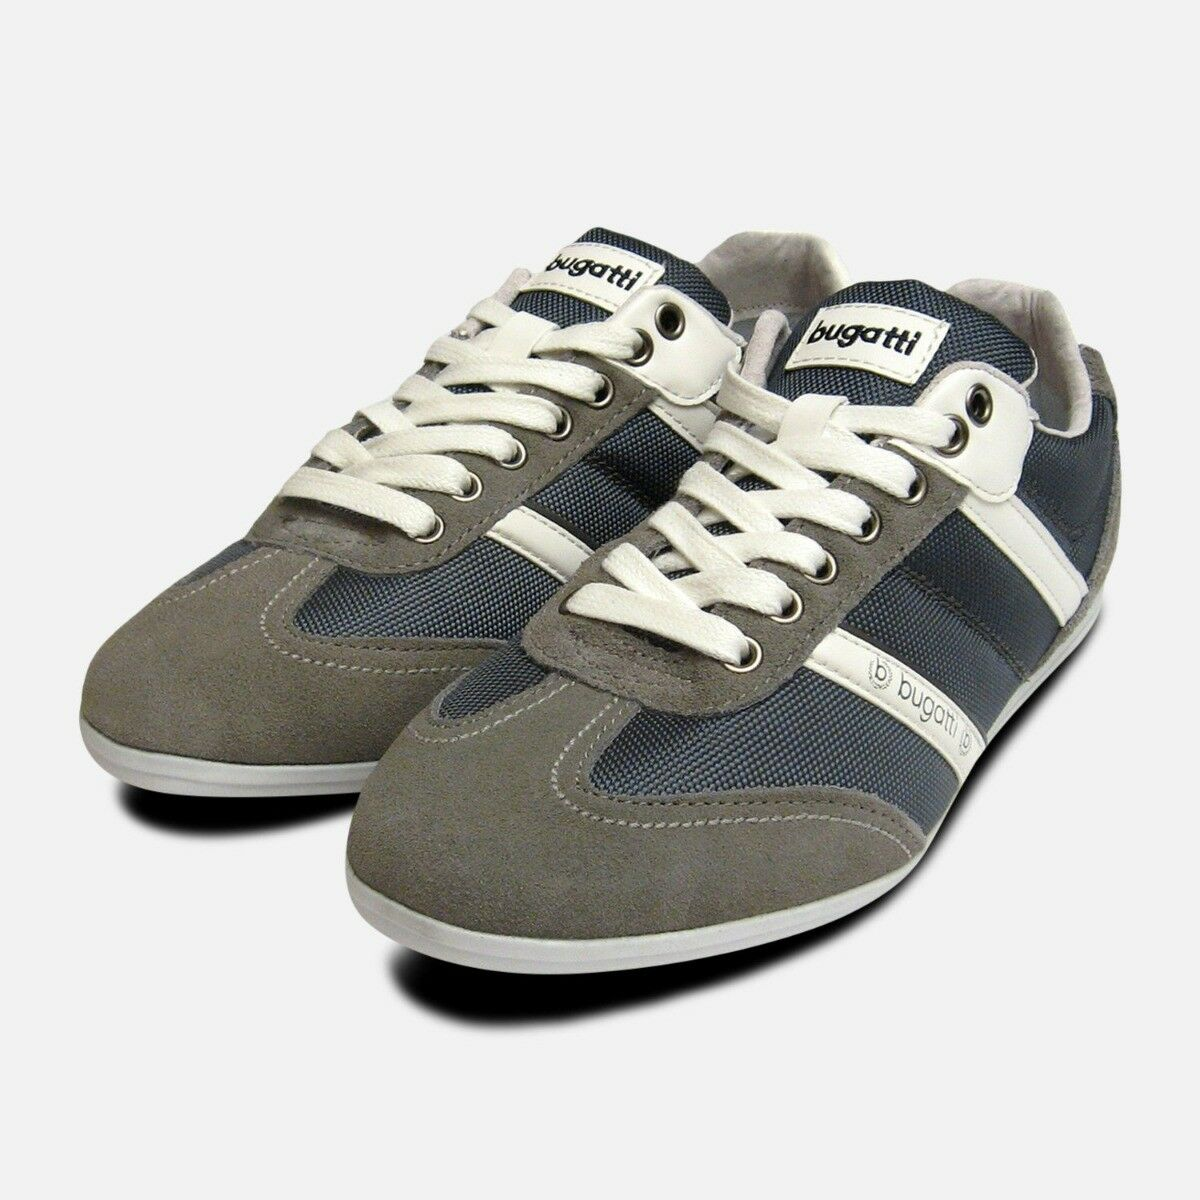 Mens Bugatti Turnschuhe in grau Suede Leather Designer Trainers